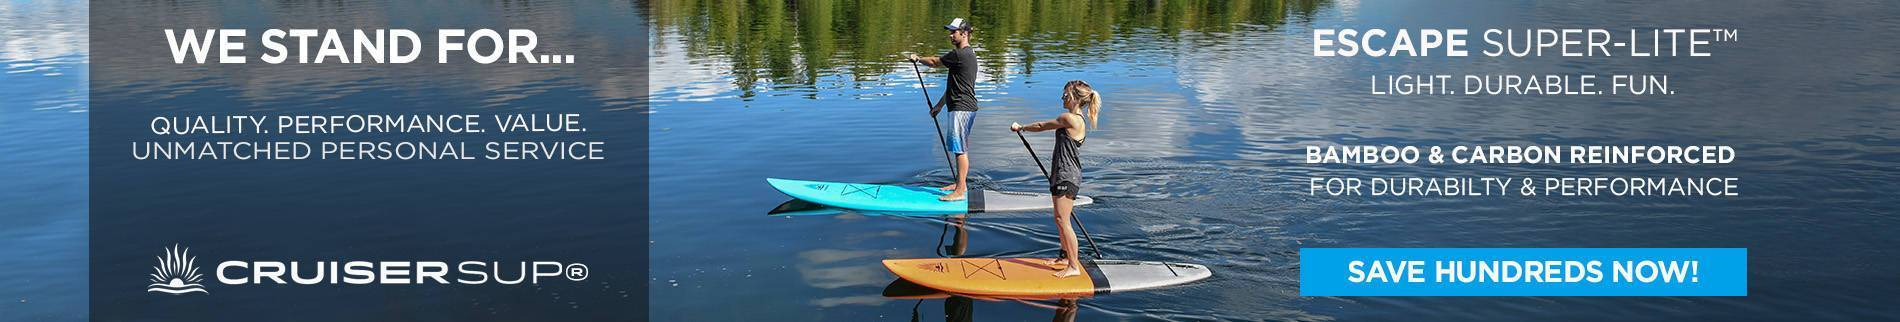 Paddle Board Users Under 170 lbs